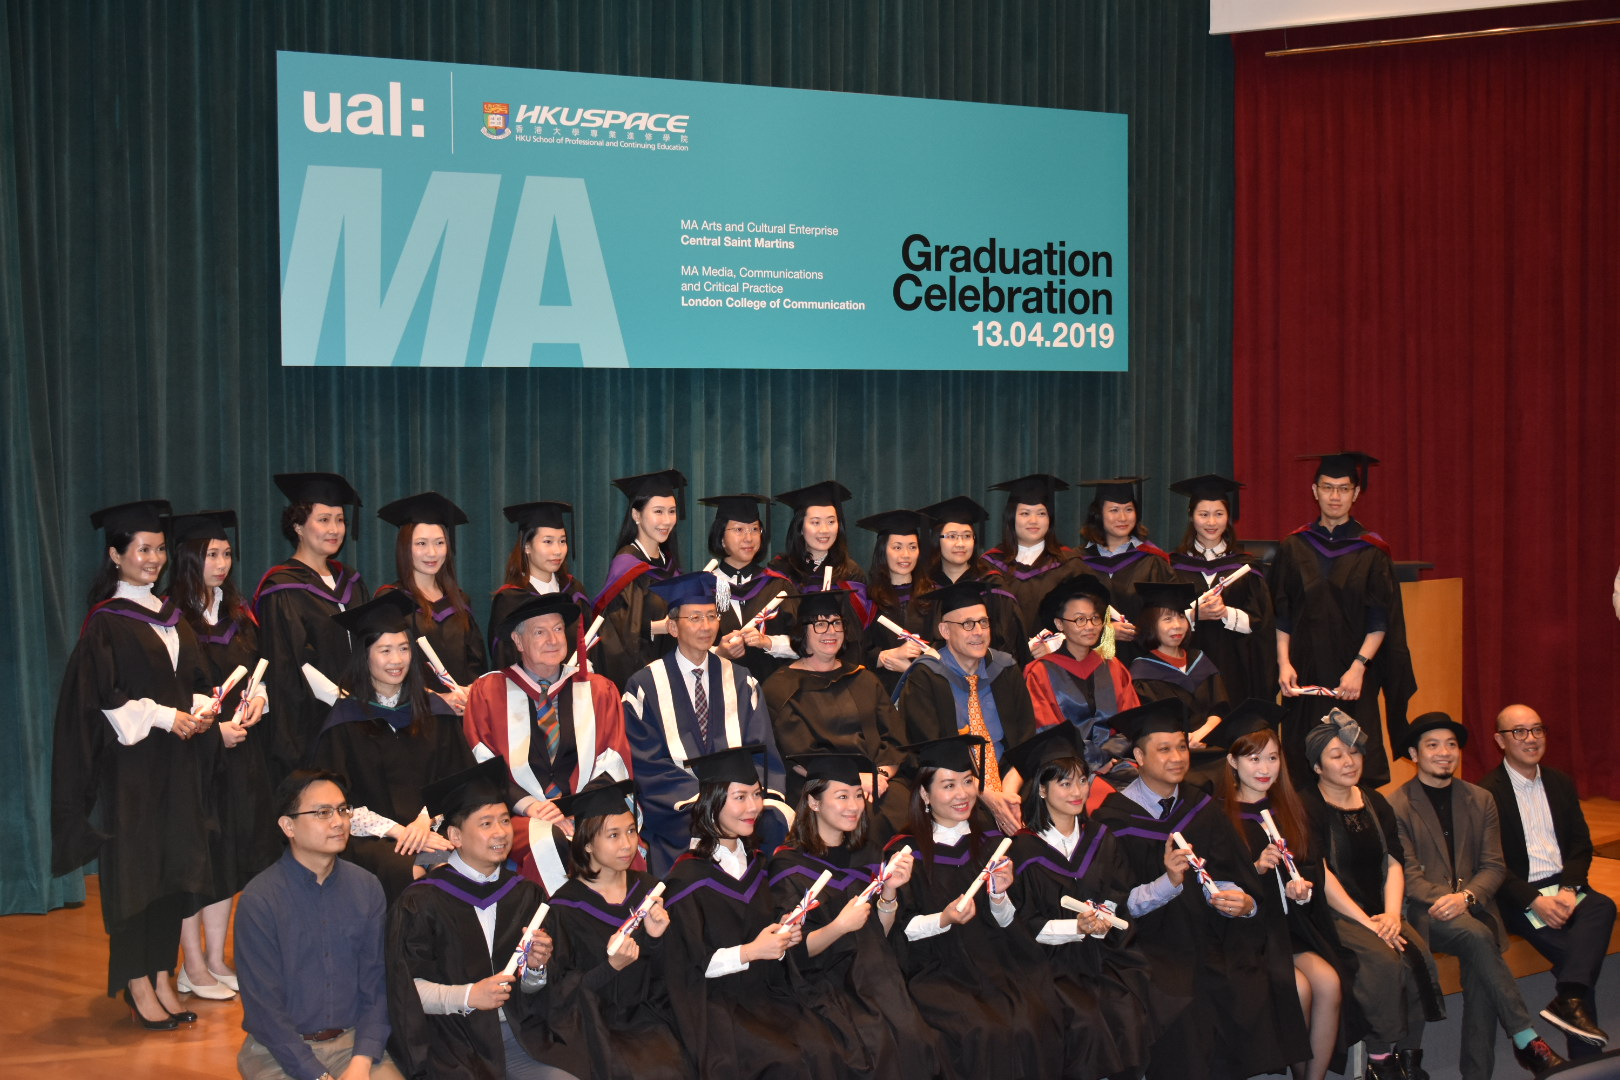 UAL and HKUSPACE 2019 graduates in gowns